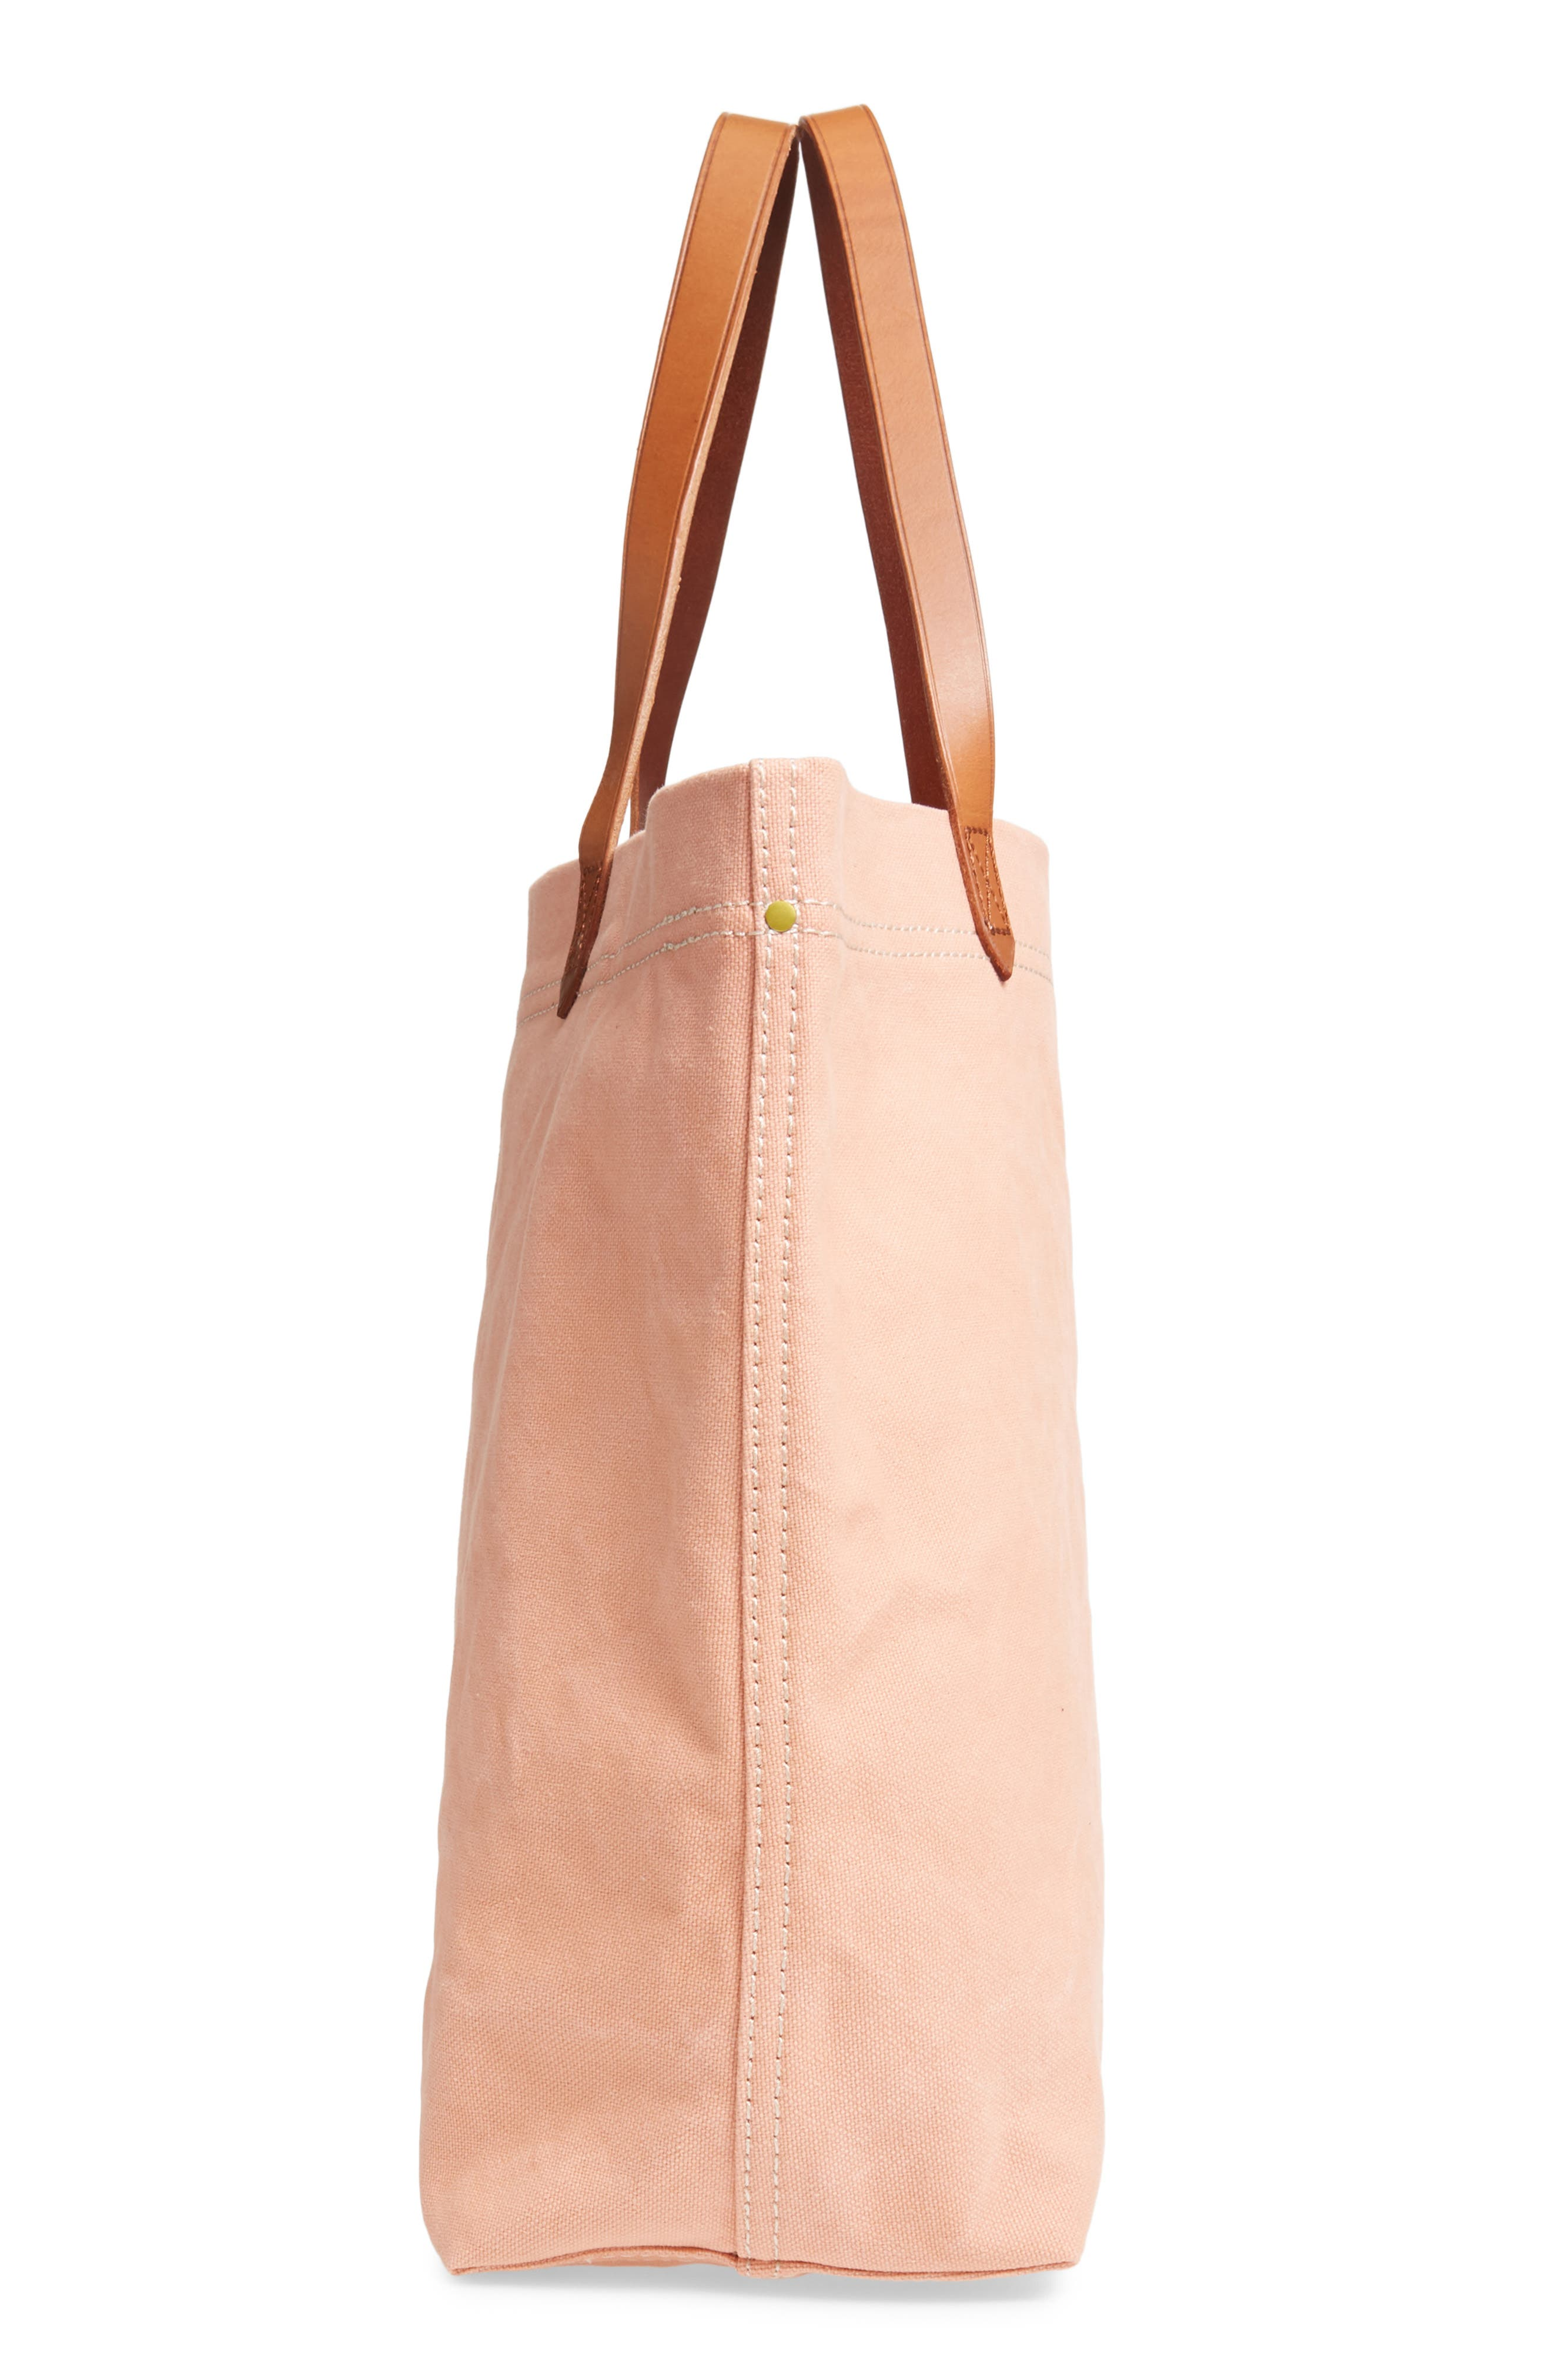 MADEWELL, Canvas Transport Tote, Alternate thumbnail 5, color, ANTIQUE CORAL